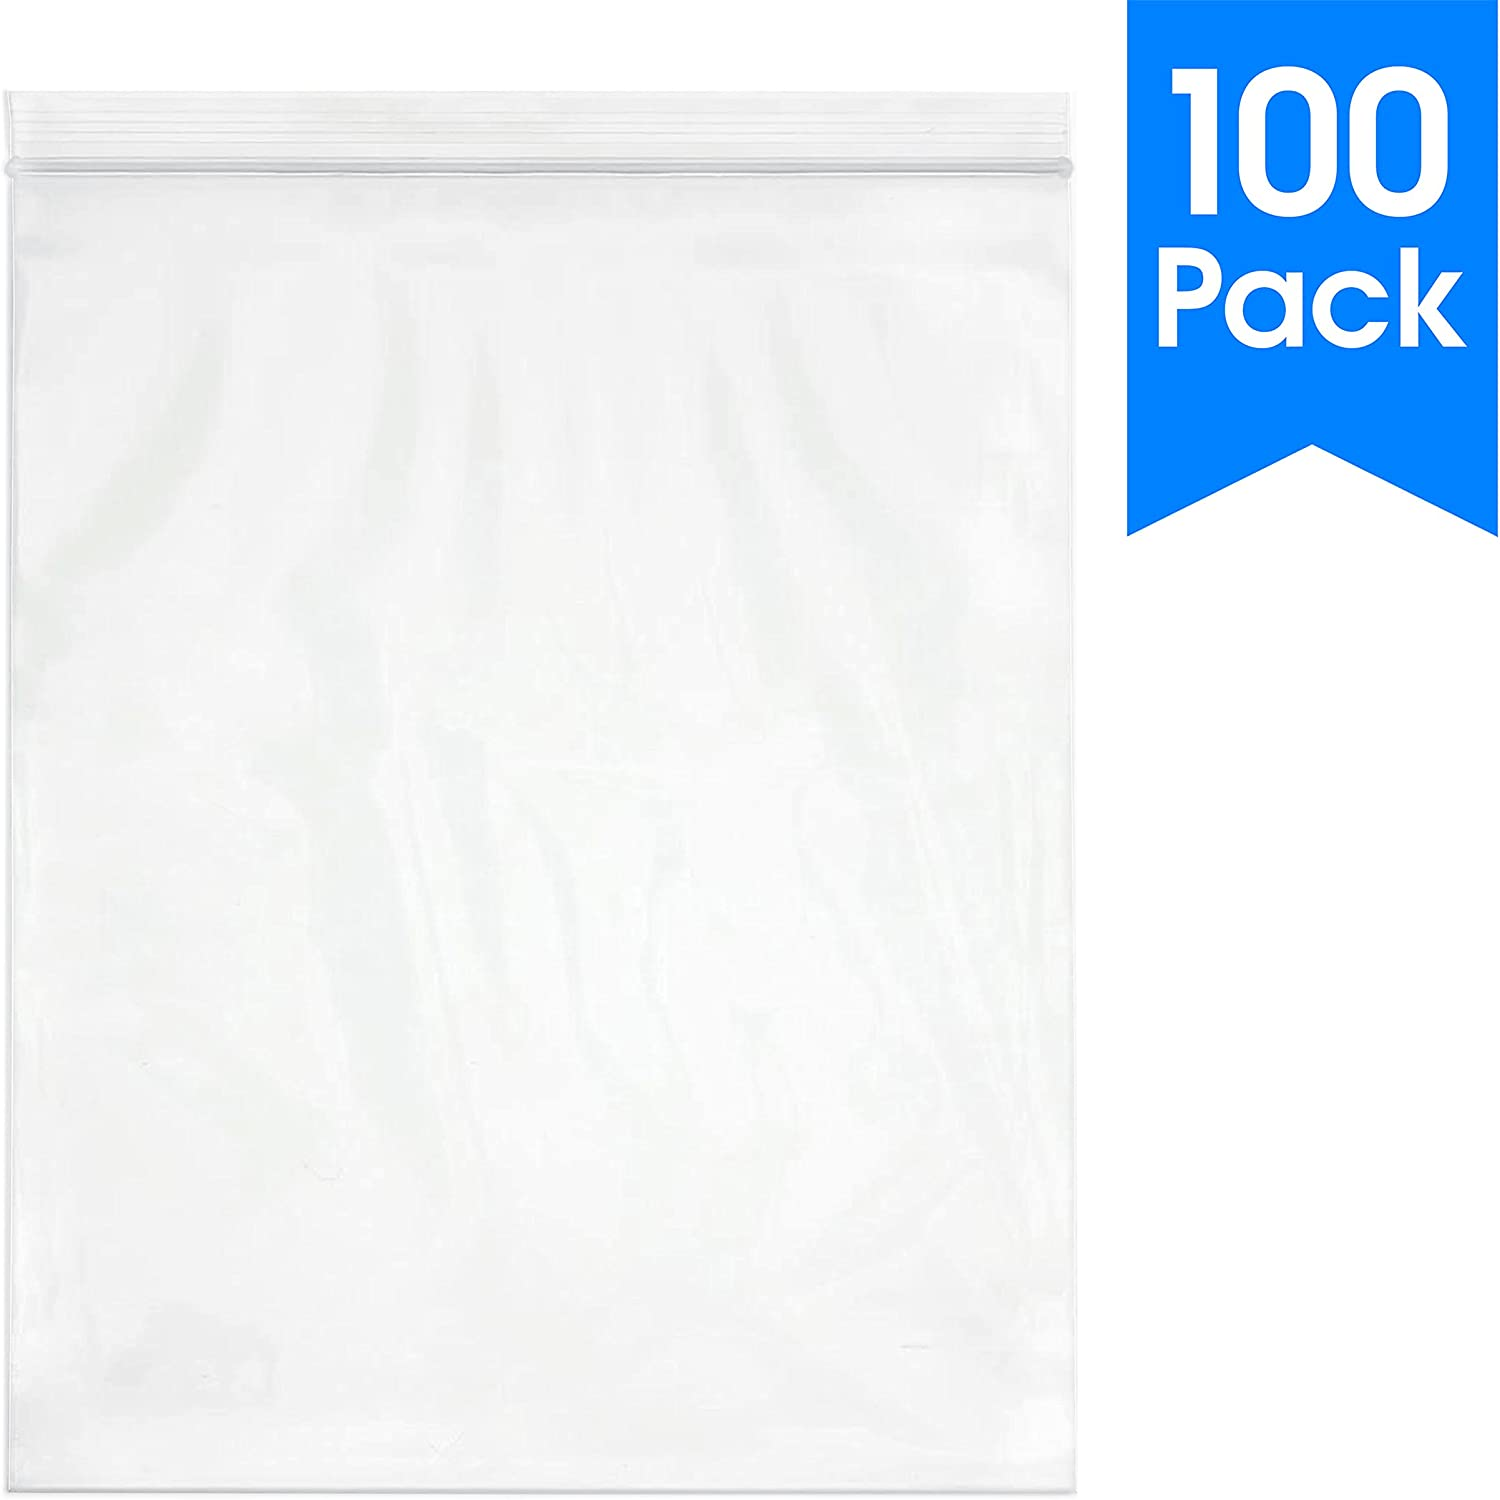 "Spartan Industrial || 100 Count - 13 X 15"" - 2 Gallon Clear Plastic Reclosable Zip Poly Bags with Resealable Lock Seal Zipper - 2 Mil (More Sizes Available)"